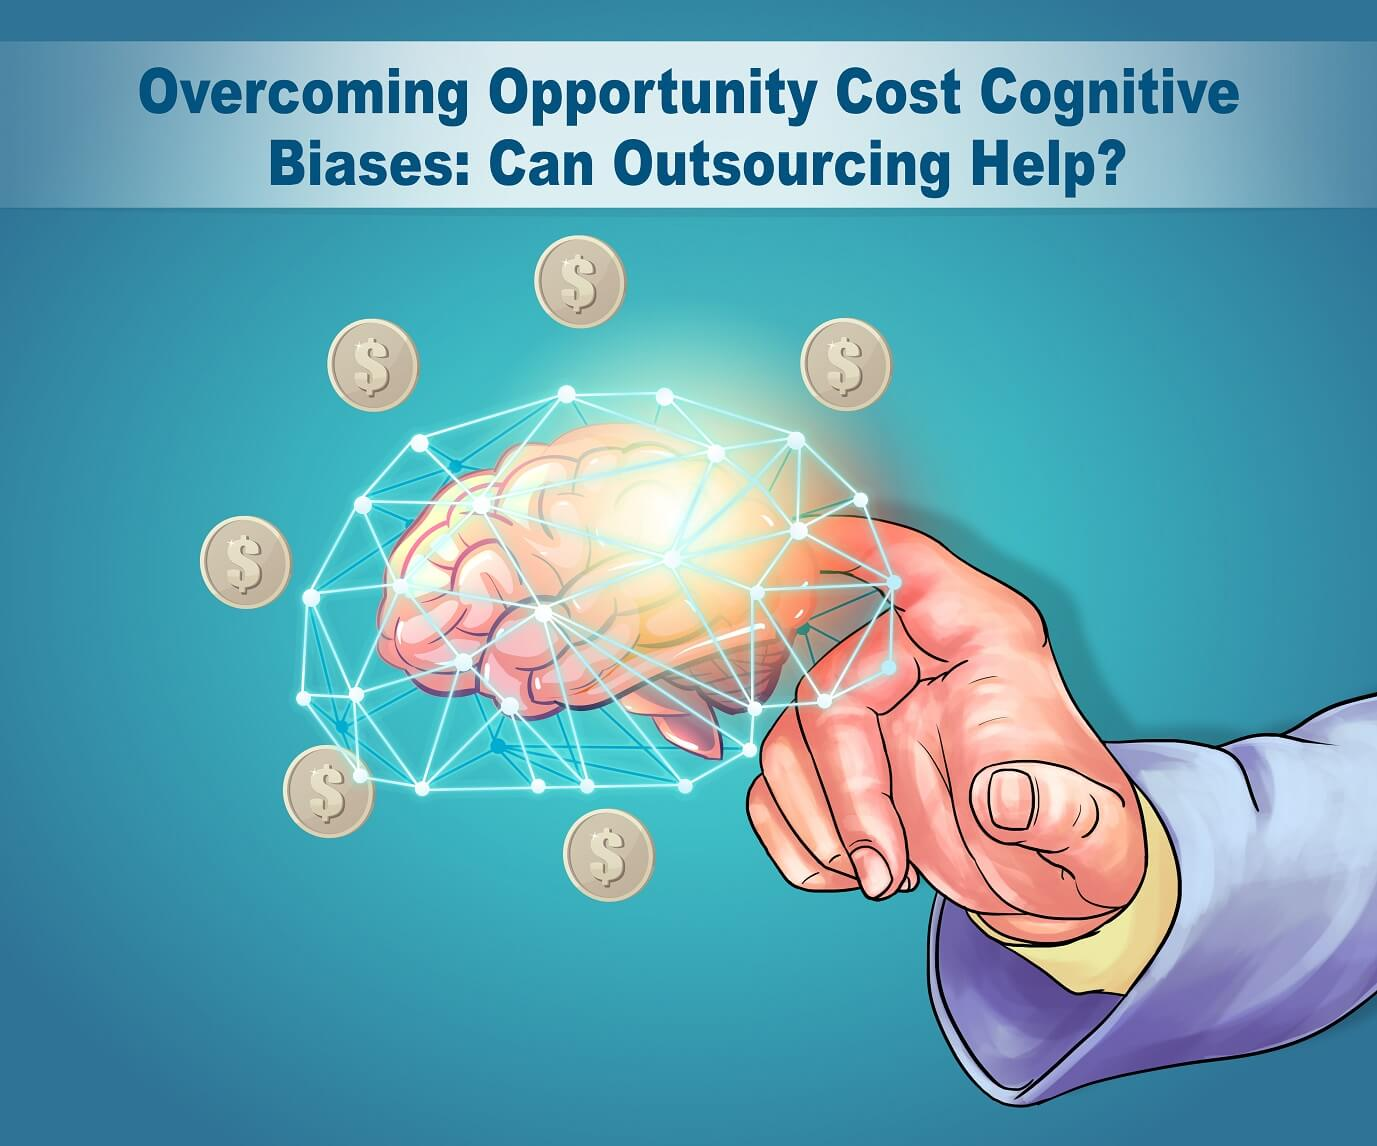 Overcoming Opportunity Cost Cognitive Biases Can Outsourcing Help